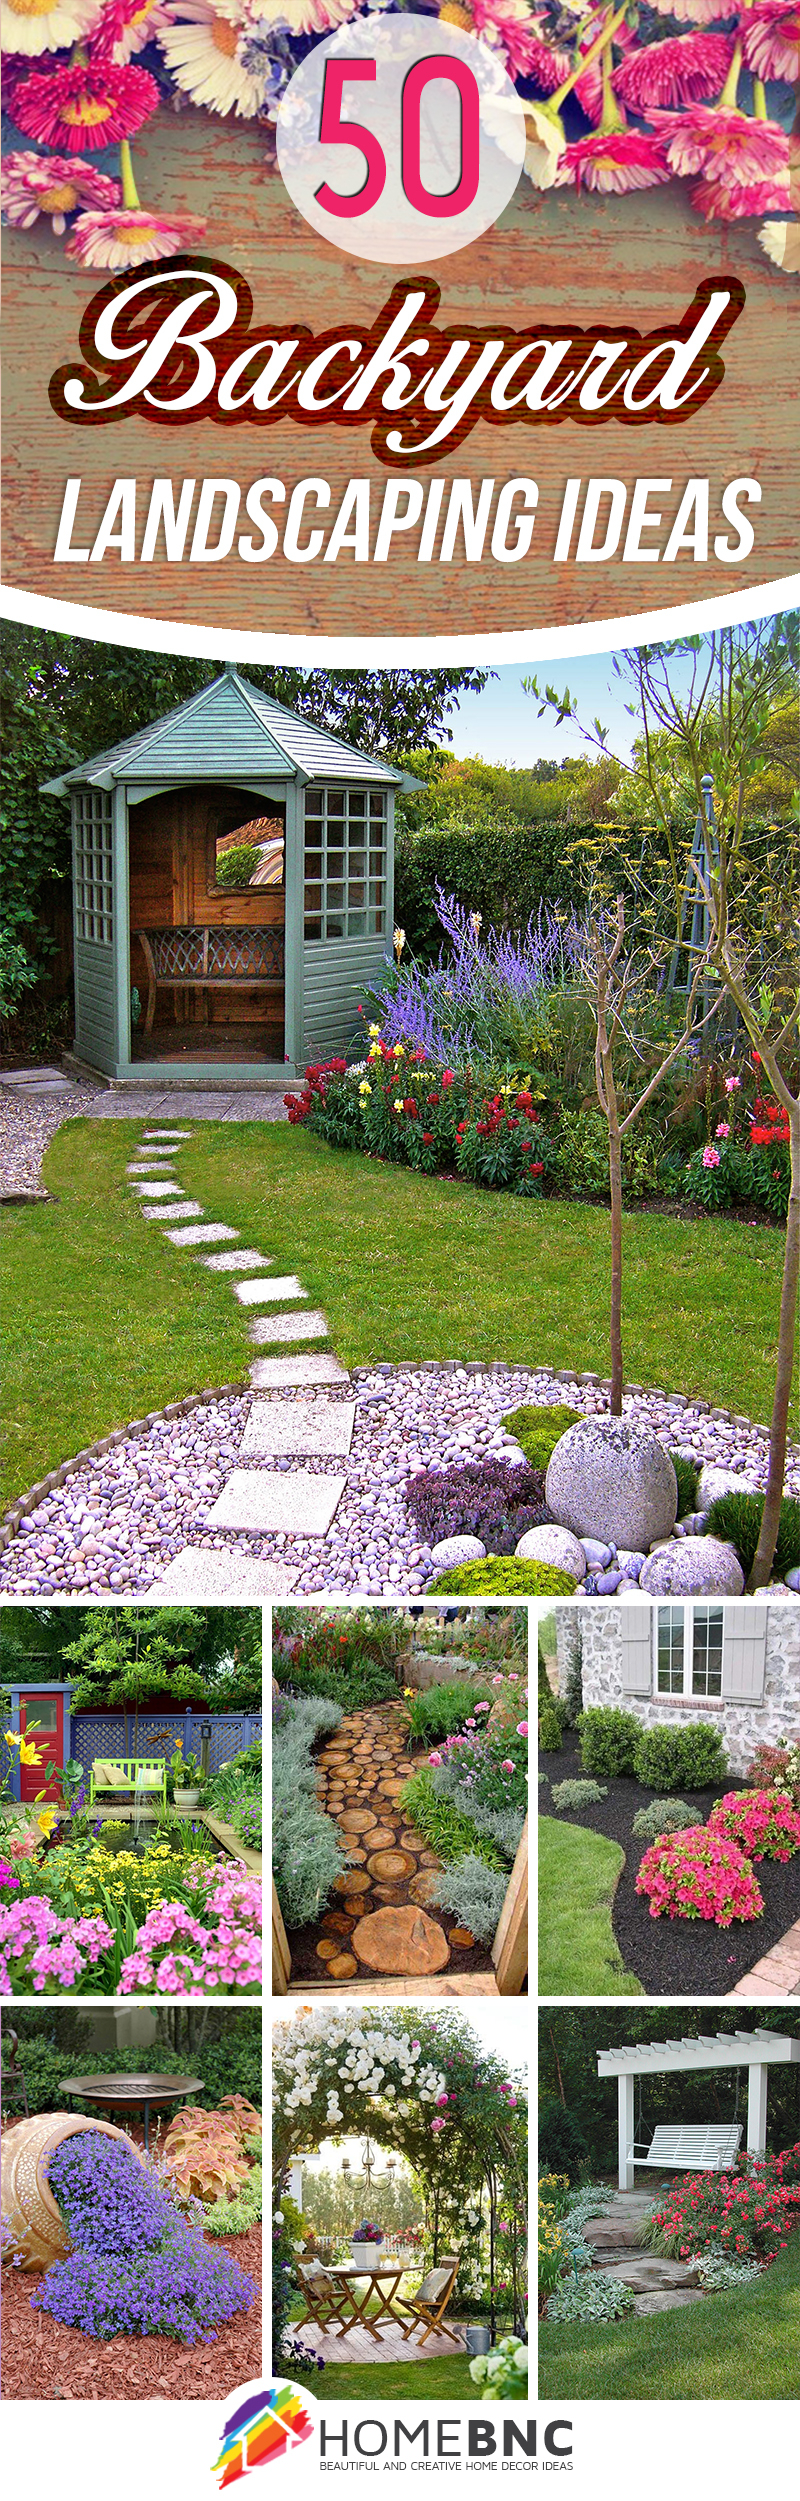 50 Best Backyard Landscaping Ideas And Designs In 2019 within 12 Smart Concepts of How to Makeover Landscaping Plans Backyard